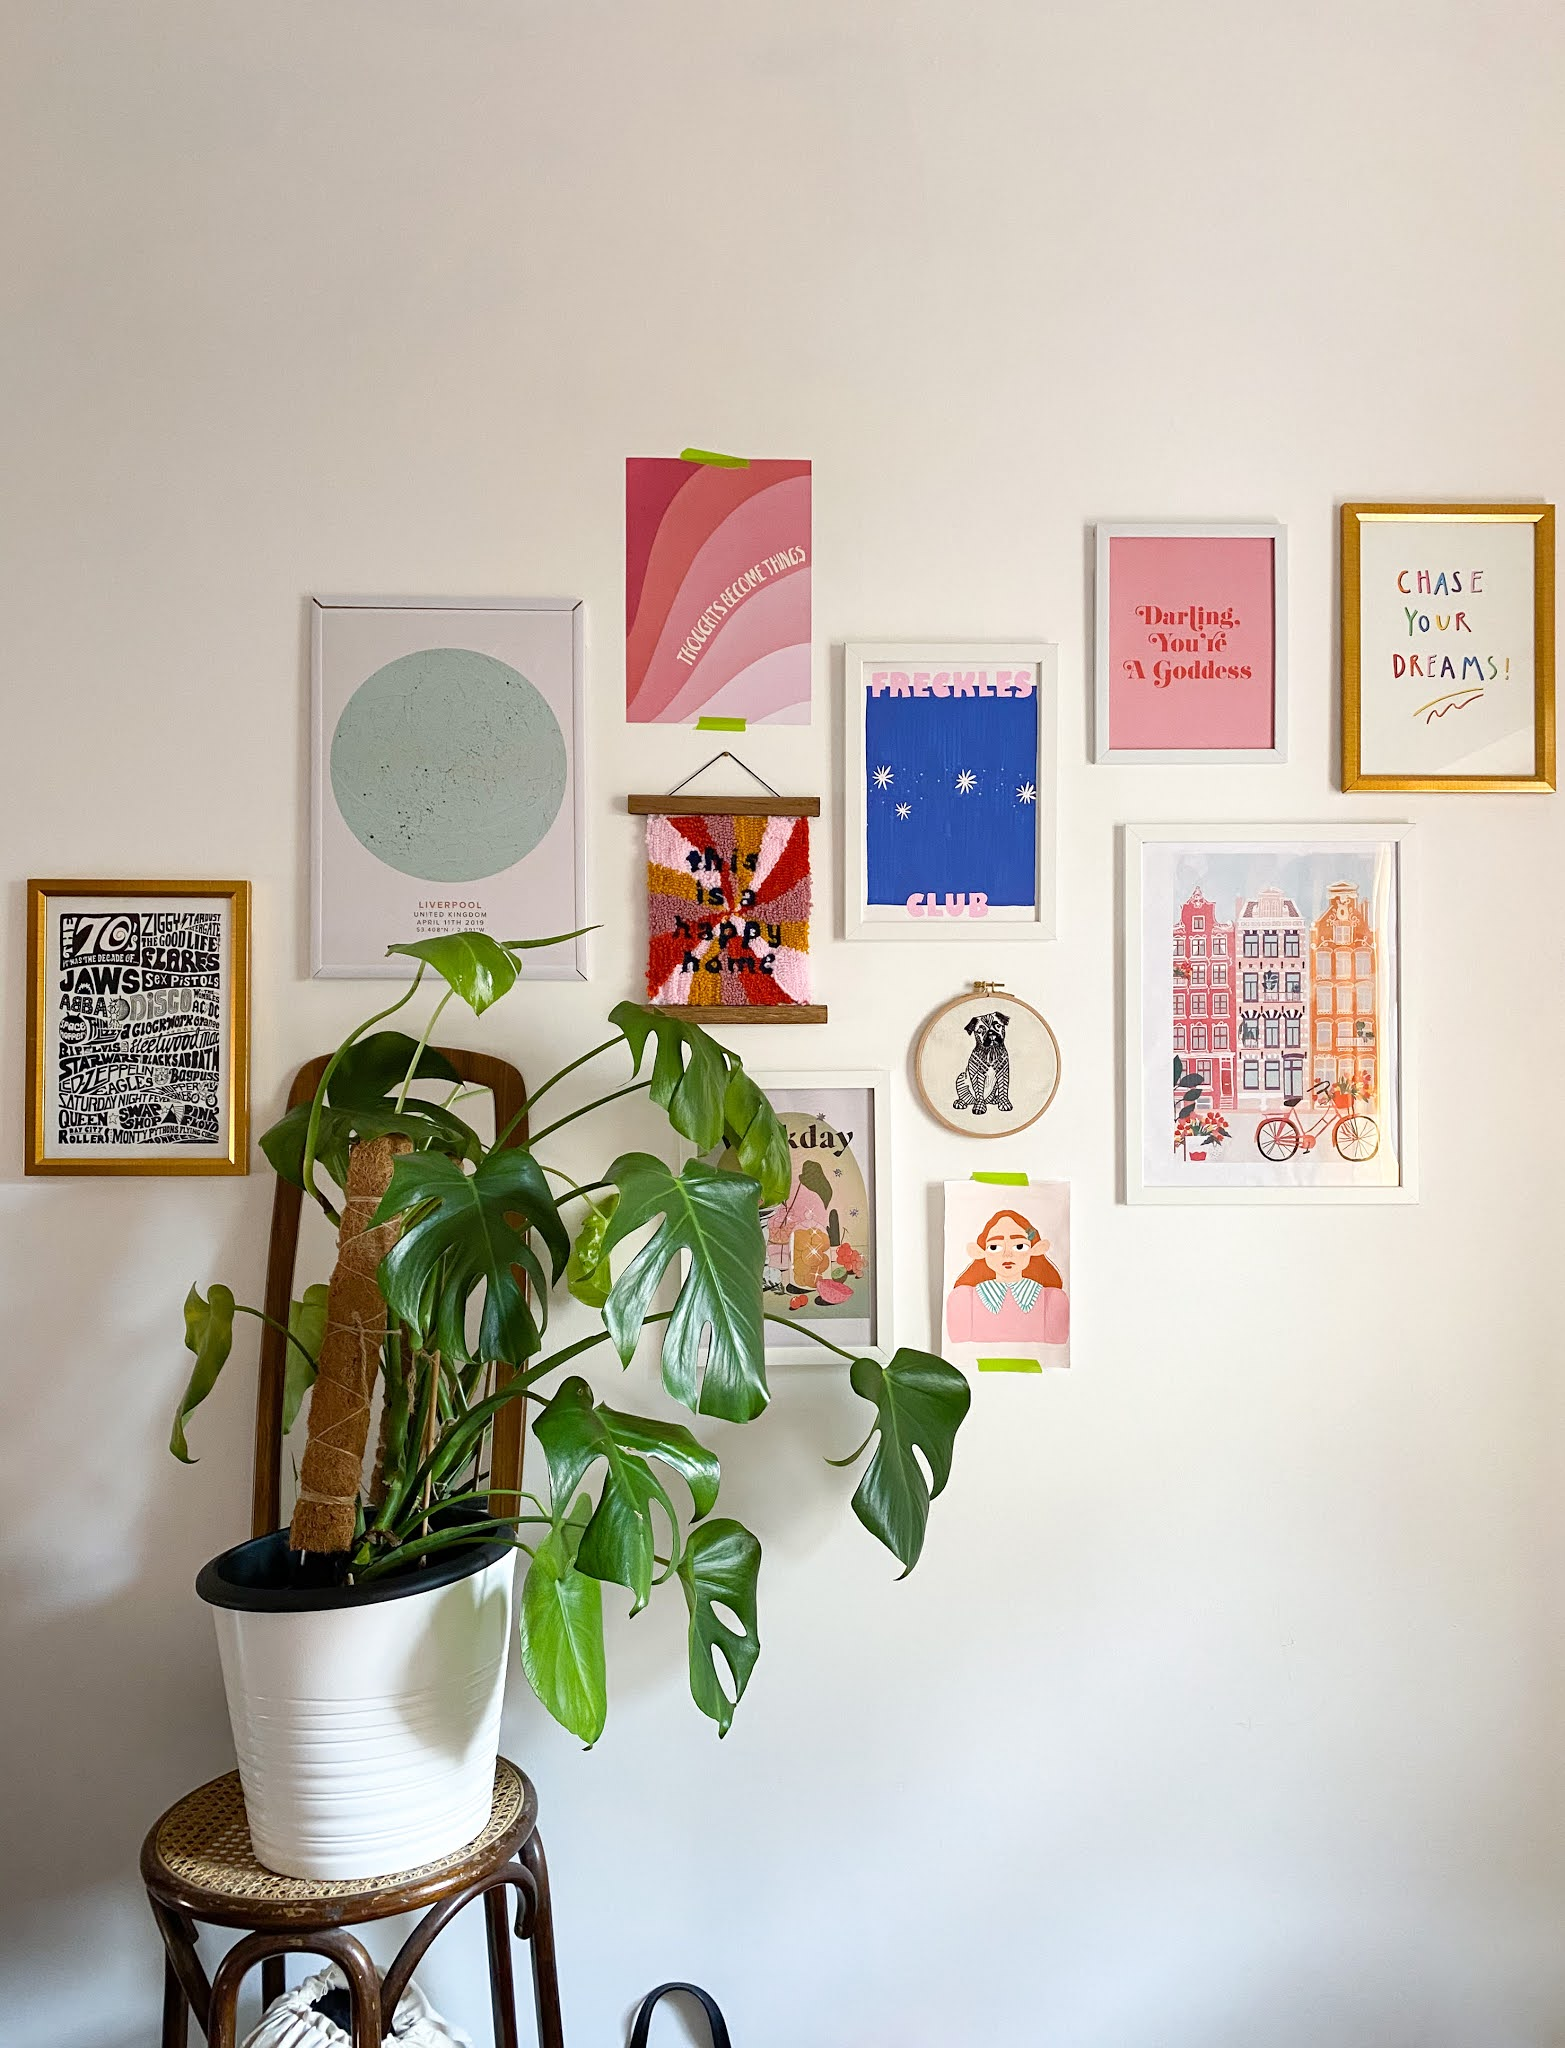 gallery wall of pink, orange and green prints and wall hangings on painted white bedroom wall. A dark wood and rattan stool holds a large monstera plant against a teak wood 70s style mirror